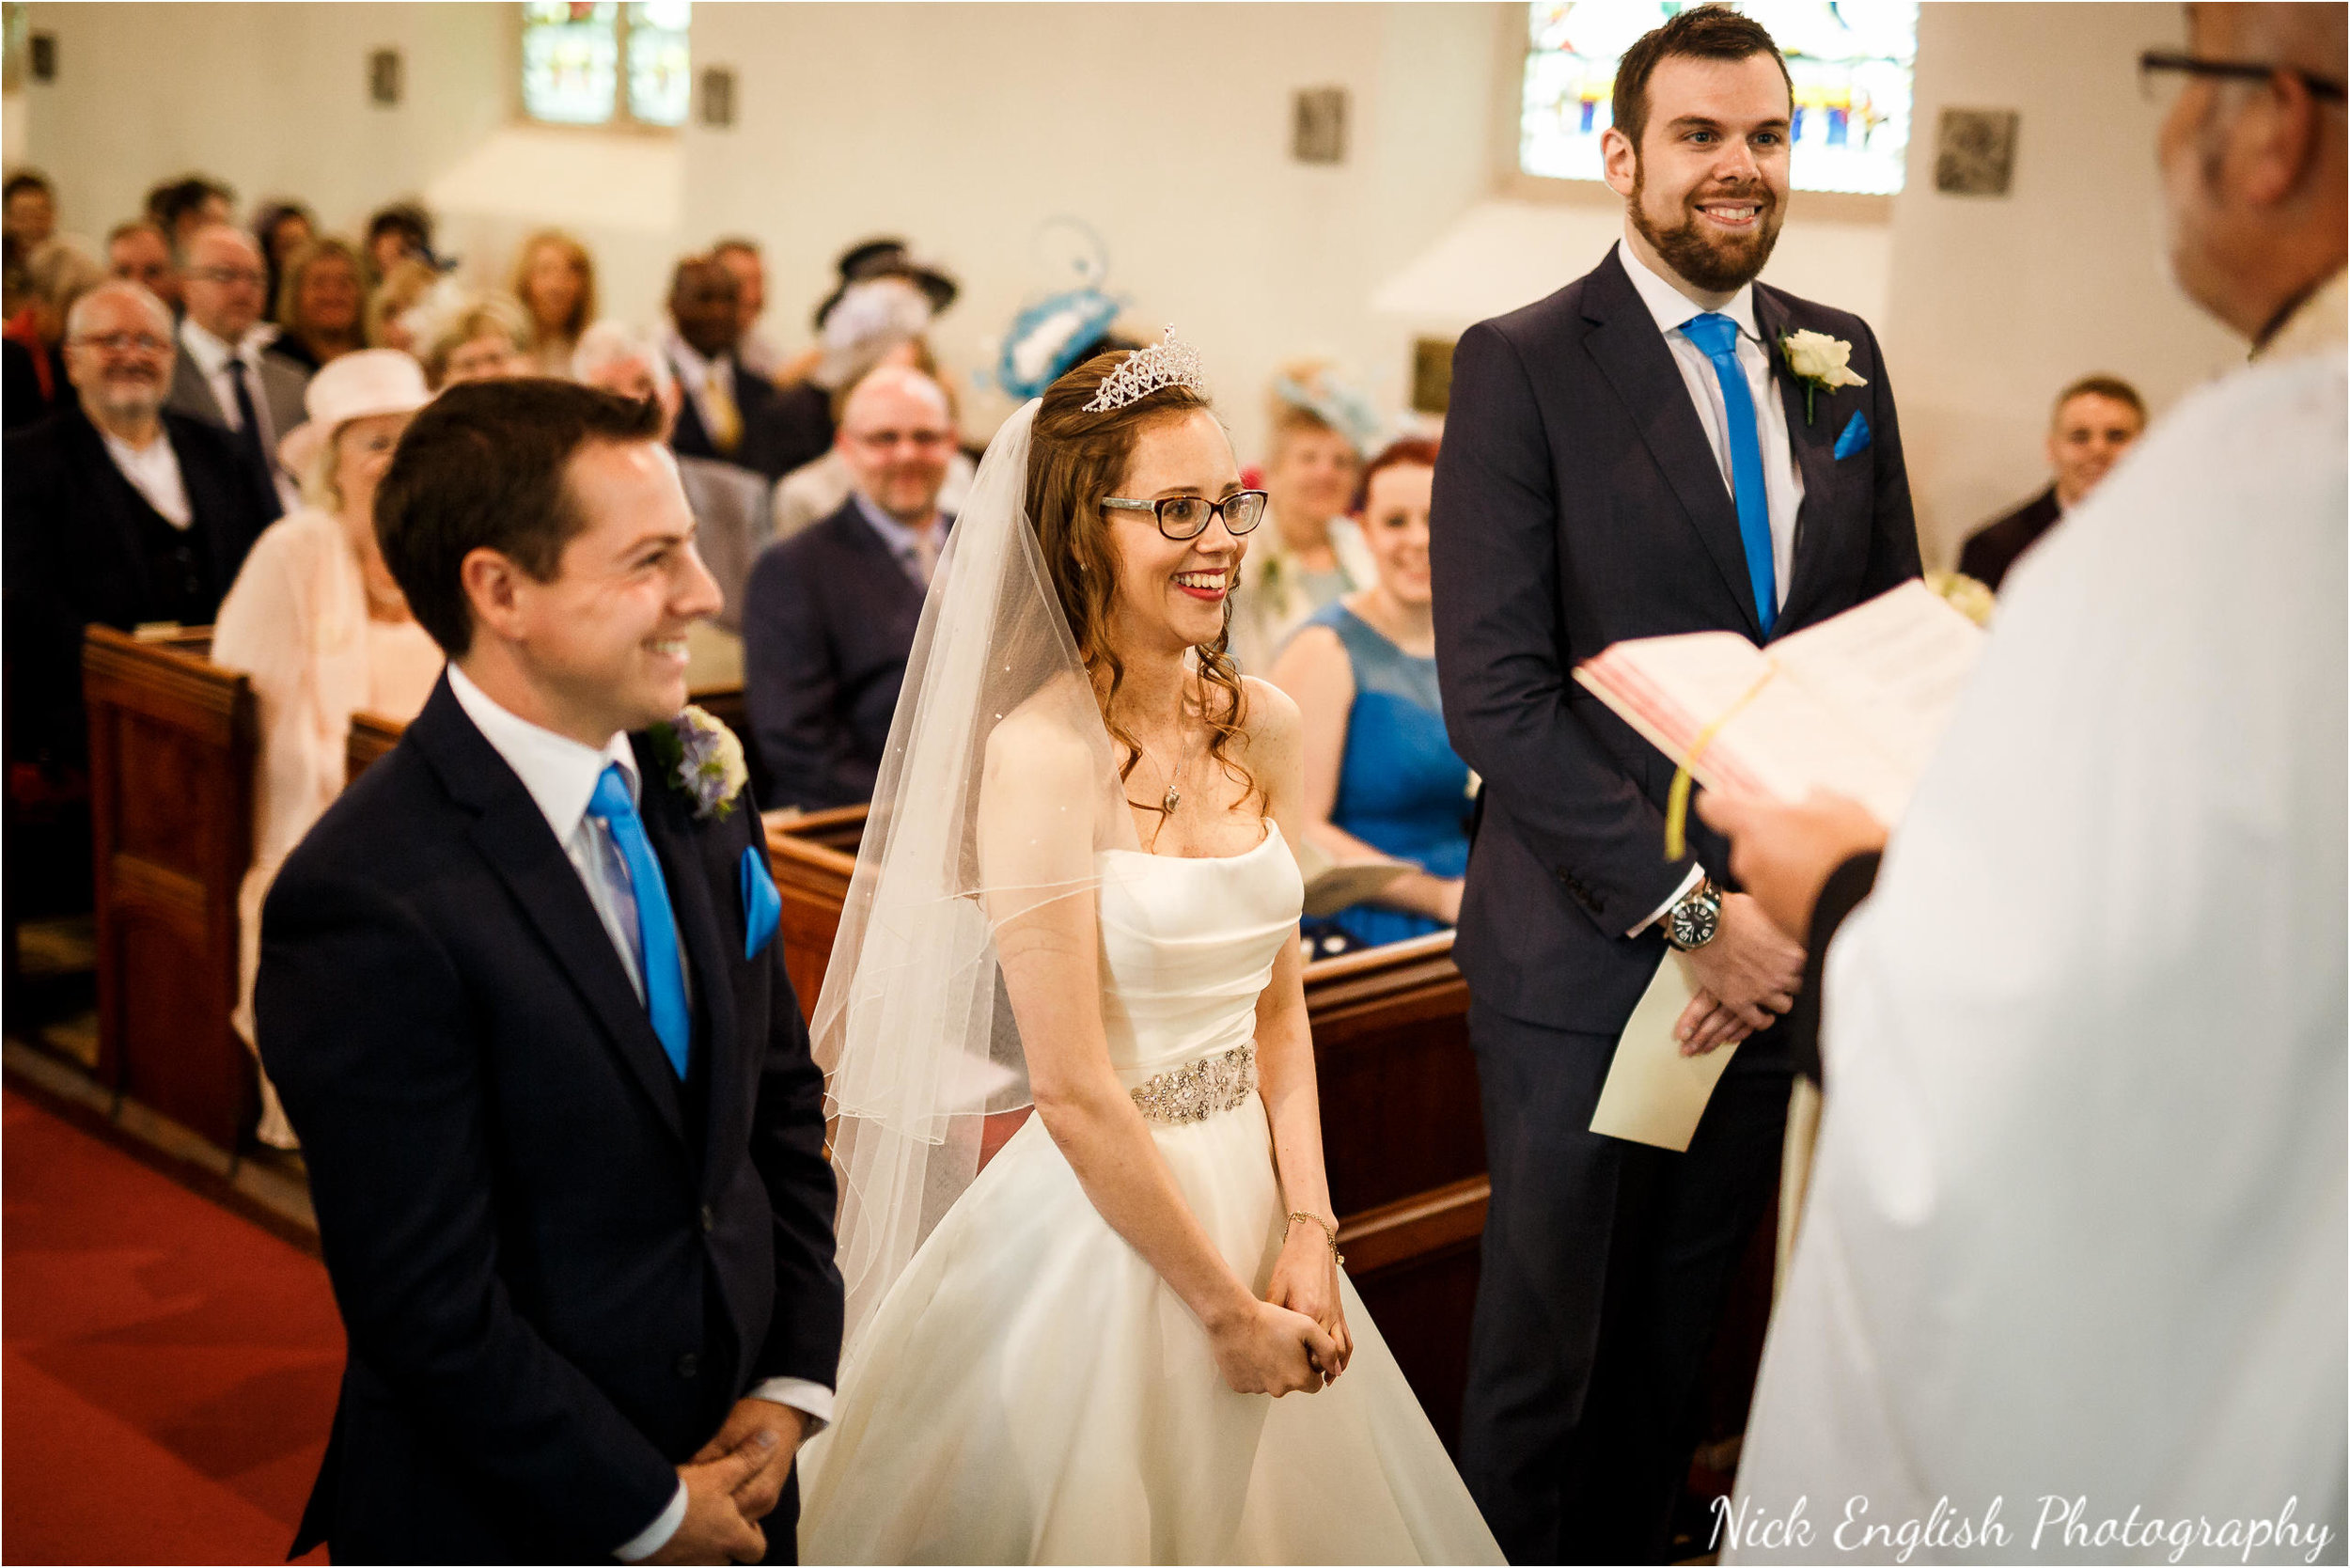 Derek Wright Georgina Wedding Photographs 75.jpg